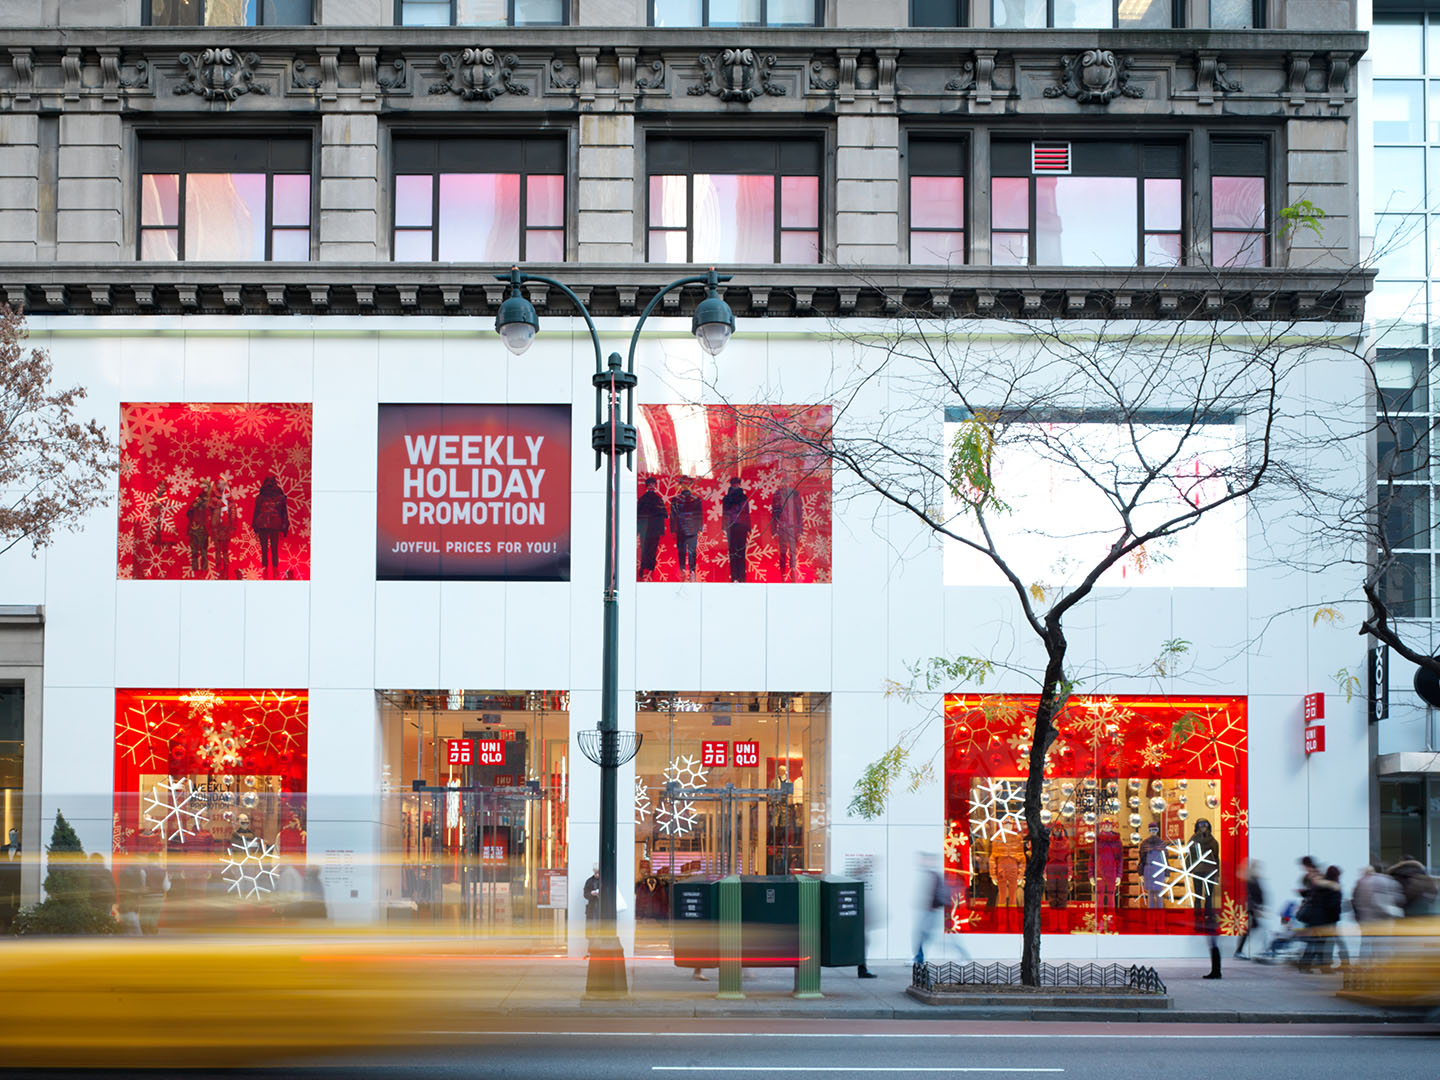 New York Industrial Works Uniqlo Holiday New York Ny Cameron R Neilson Photographer